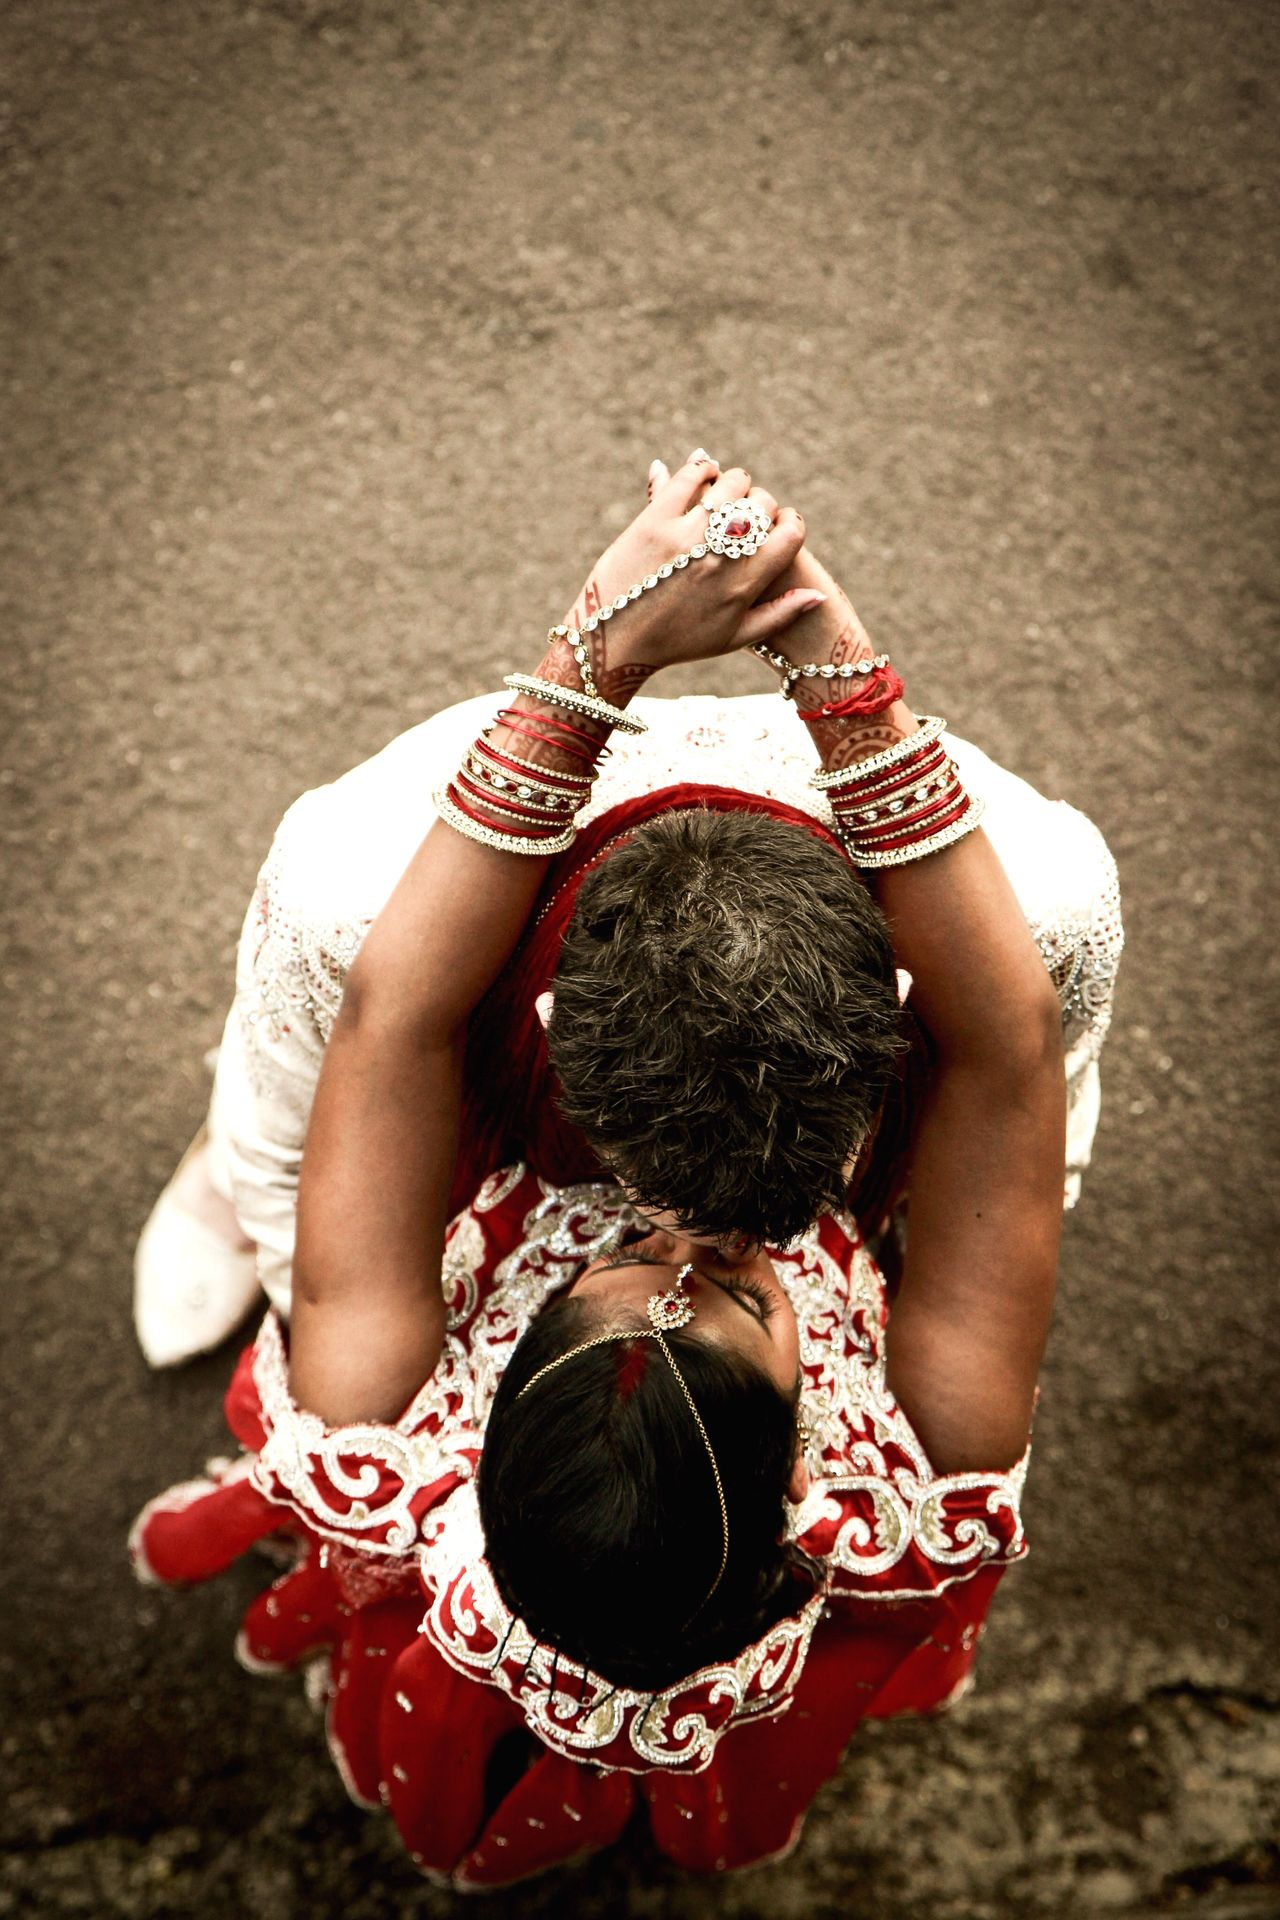 Kiss Elevated View Wedding Wedding Photography Indian Indian Wedding Couple Man And Woman Bride And Groom Saree Jewellery Different Perspective EyeEm Red White Fine Art Photography Bangles Showcase July A Bird's Eye View Art Is Everywhere